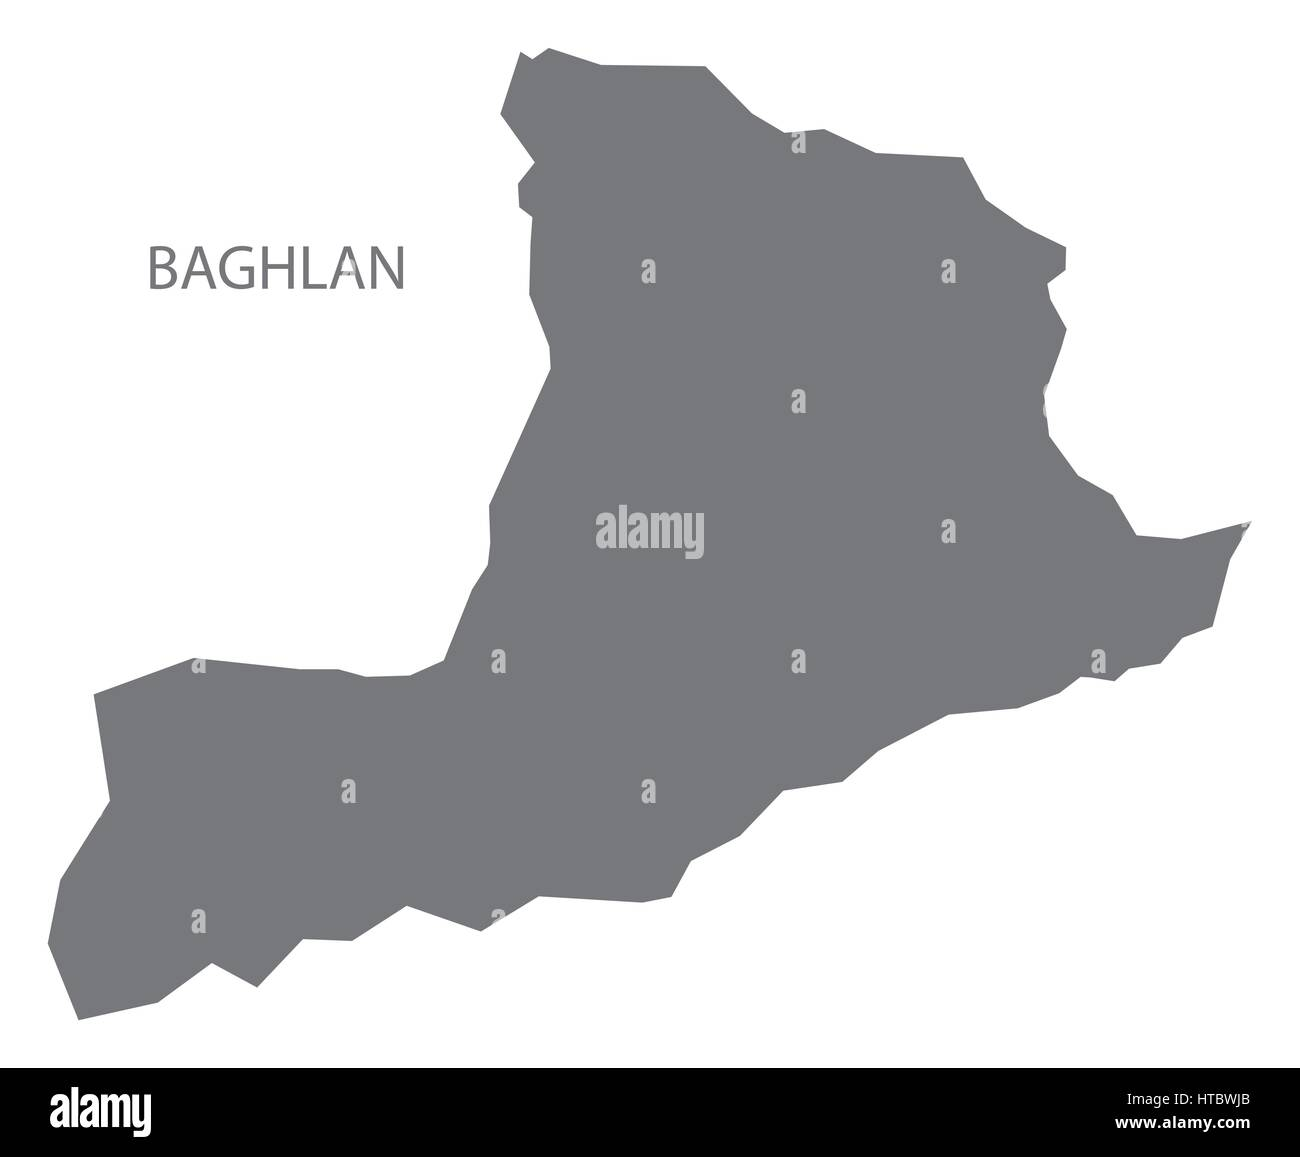 Baghlan Afghanistan map grey illustration silhouette Stock Vector